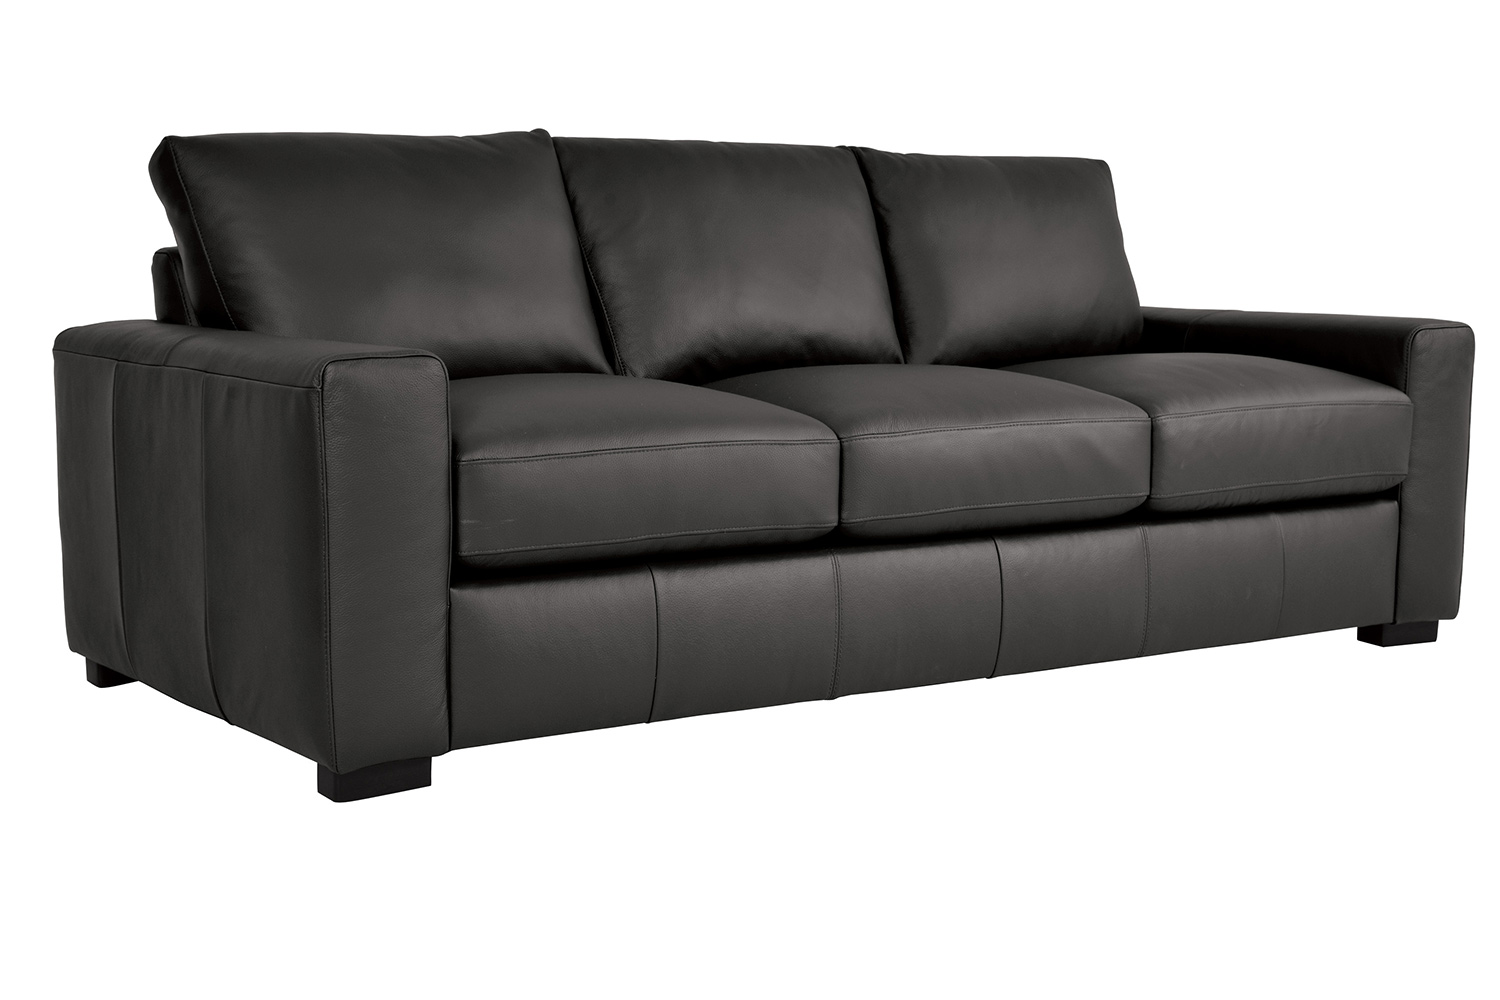 Homelegance Escolar Sofa - Brown